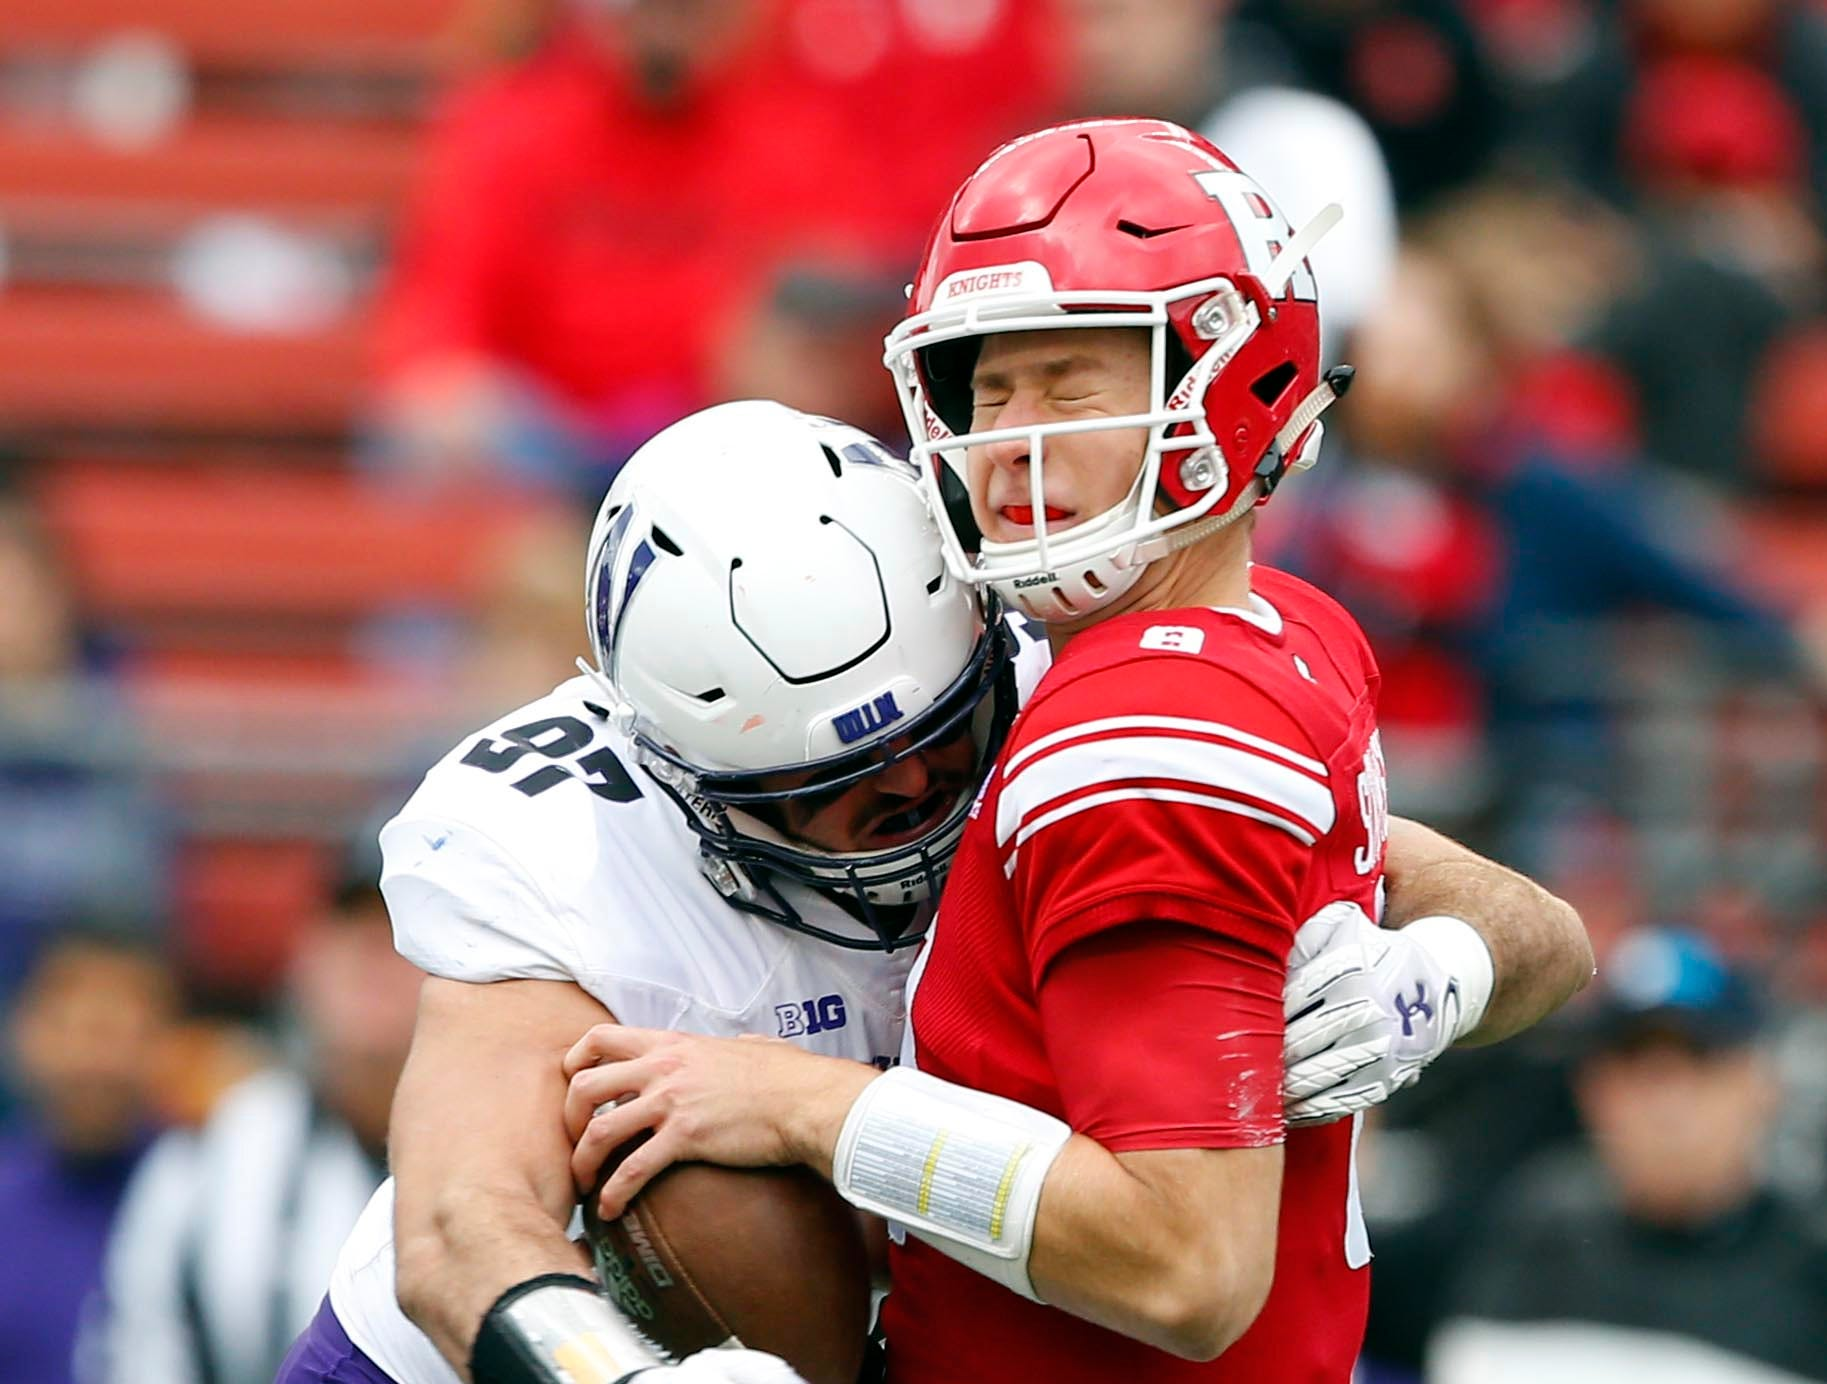 Rutgers Scarlet Knights quarterback Artur Sitkowski (8) is sacked by Northwestern Wildcats defensive lineman Joe Gaziano (97) during the first half at High Point Solutions Stadium.